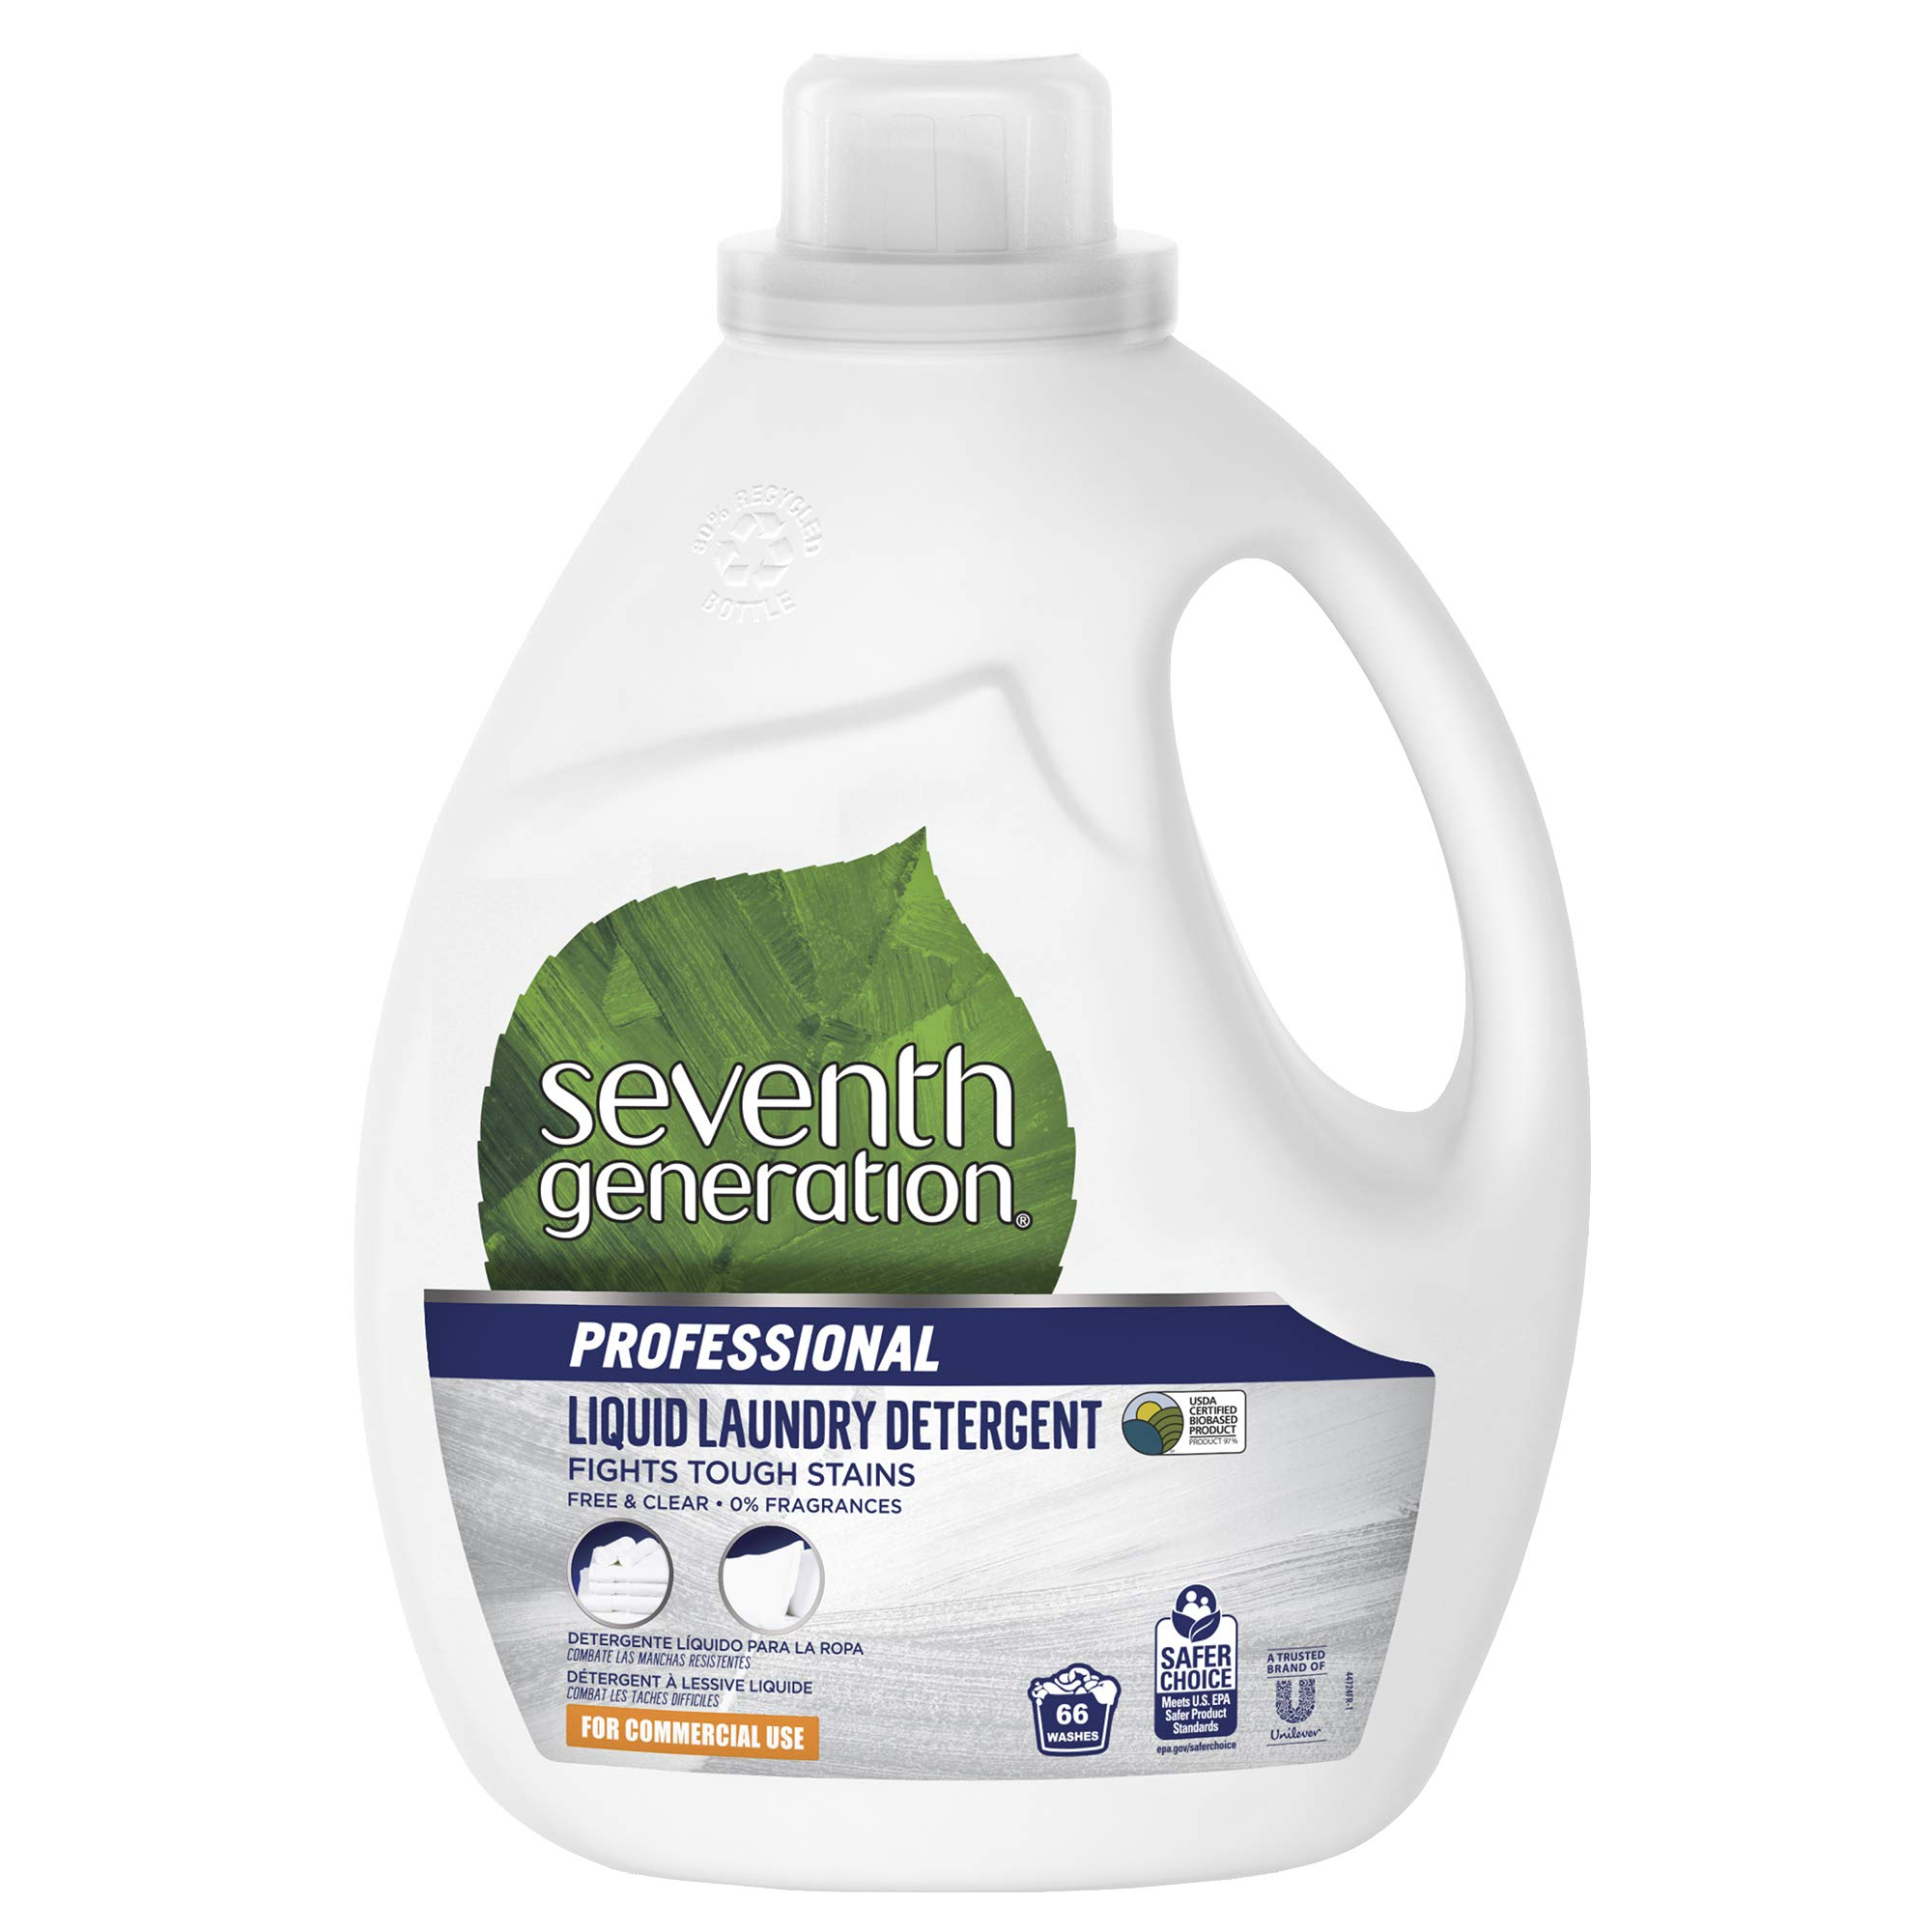 Seventh Generation Professional Liquid Laundry Detergent, Free & Clear, Hypoallergenic, Unfragranced, 100 fl oz (Pack of 4) by Seventh Generation Professional